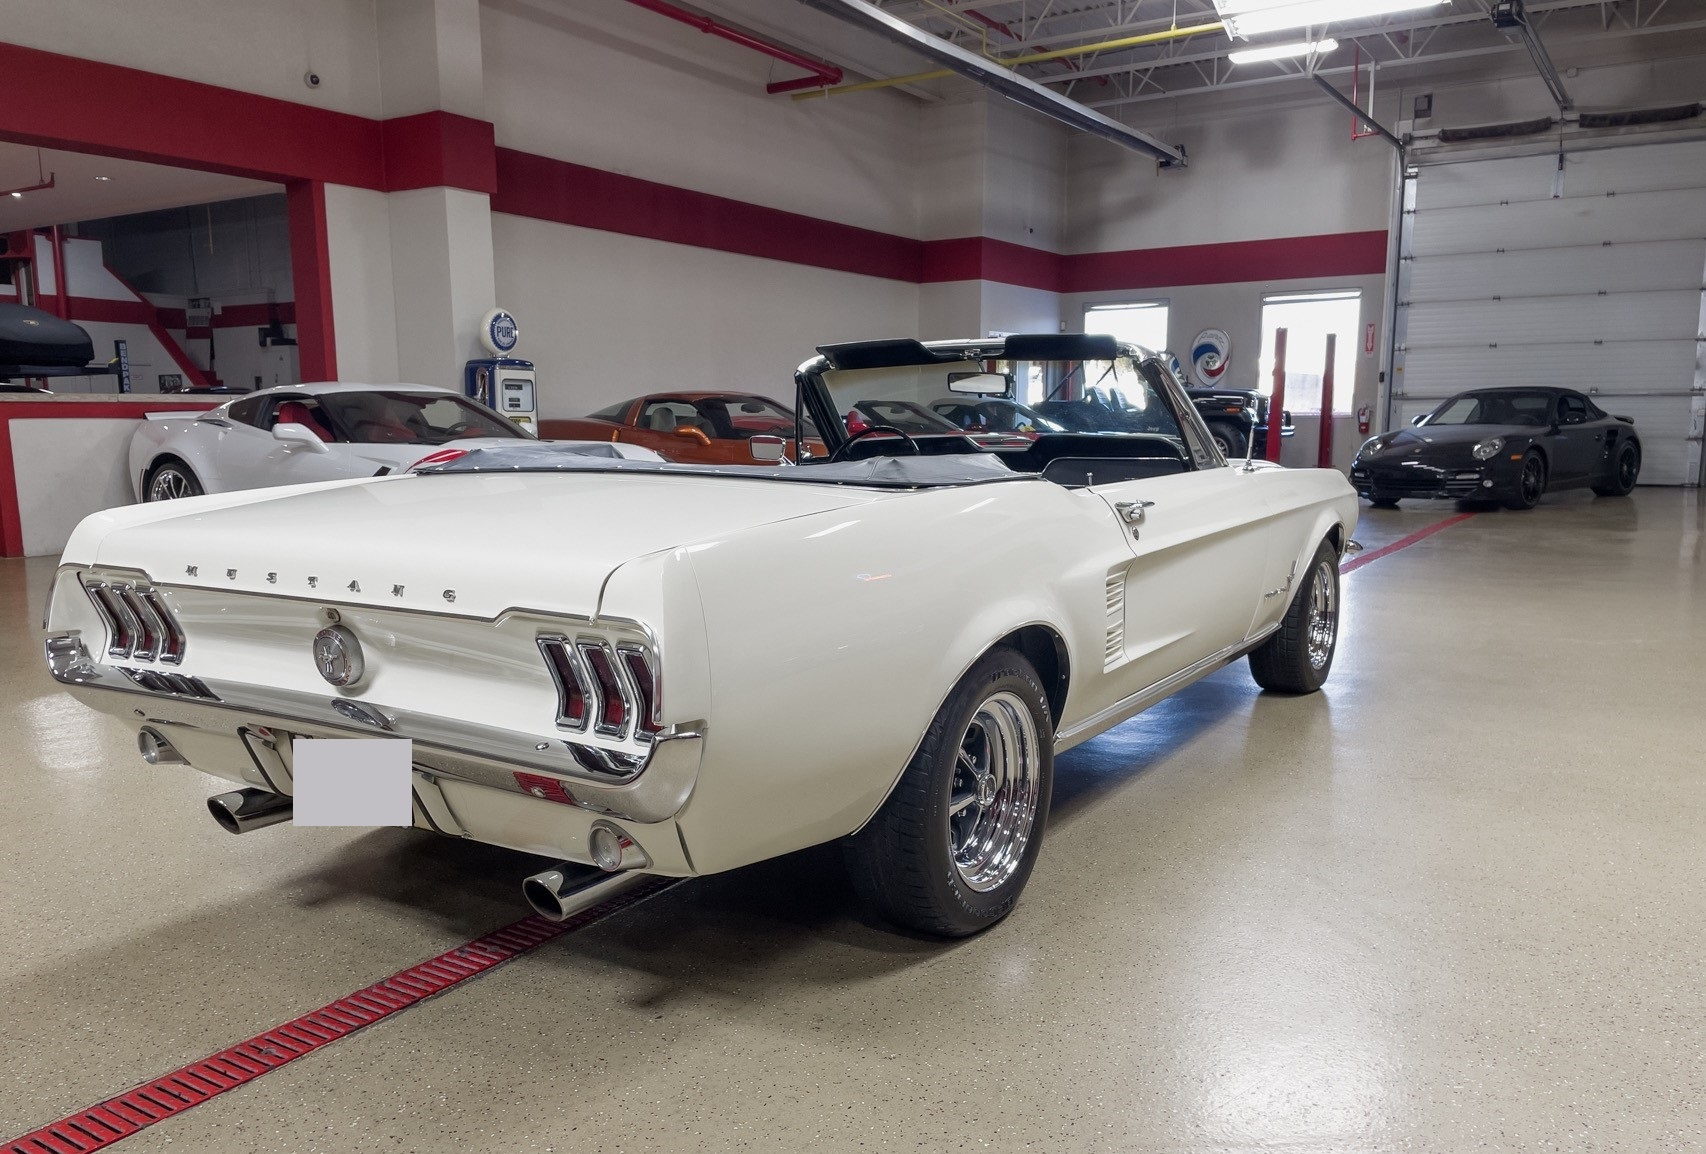 Ford-Mustang-cabriolet-1967-a26